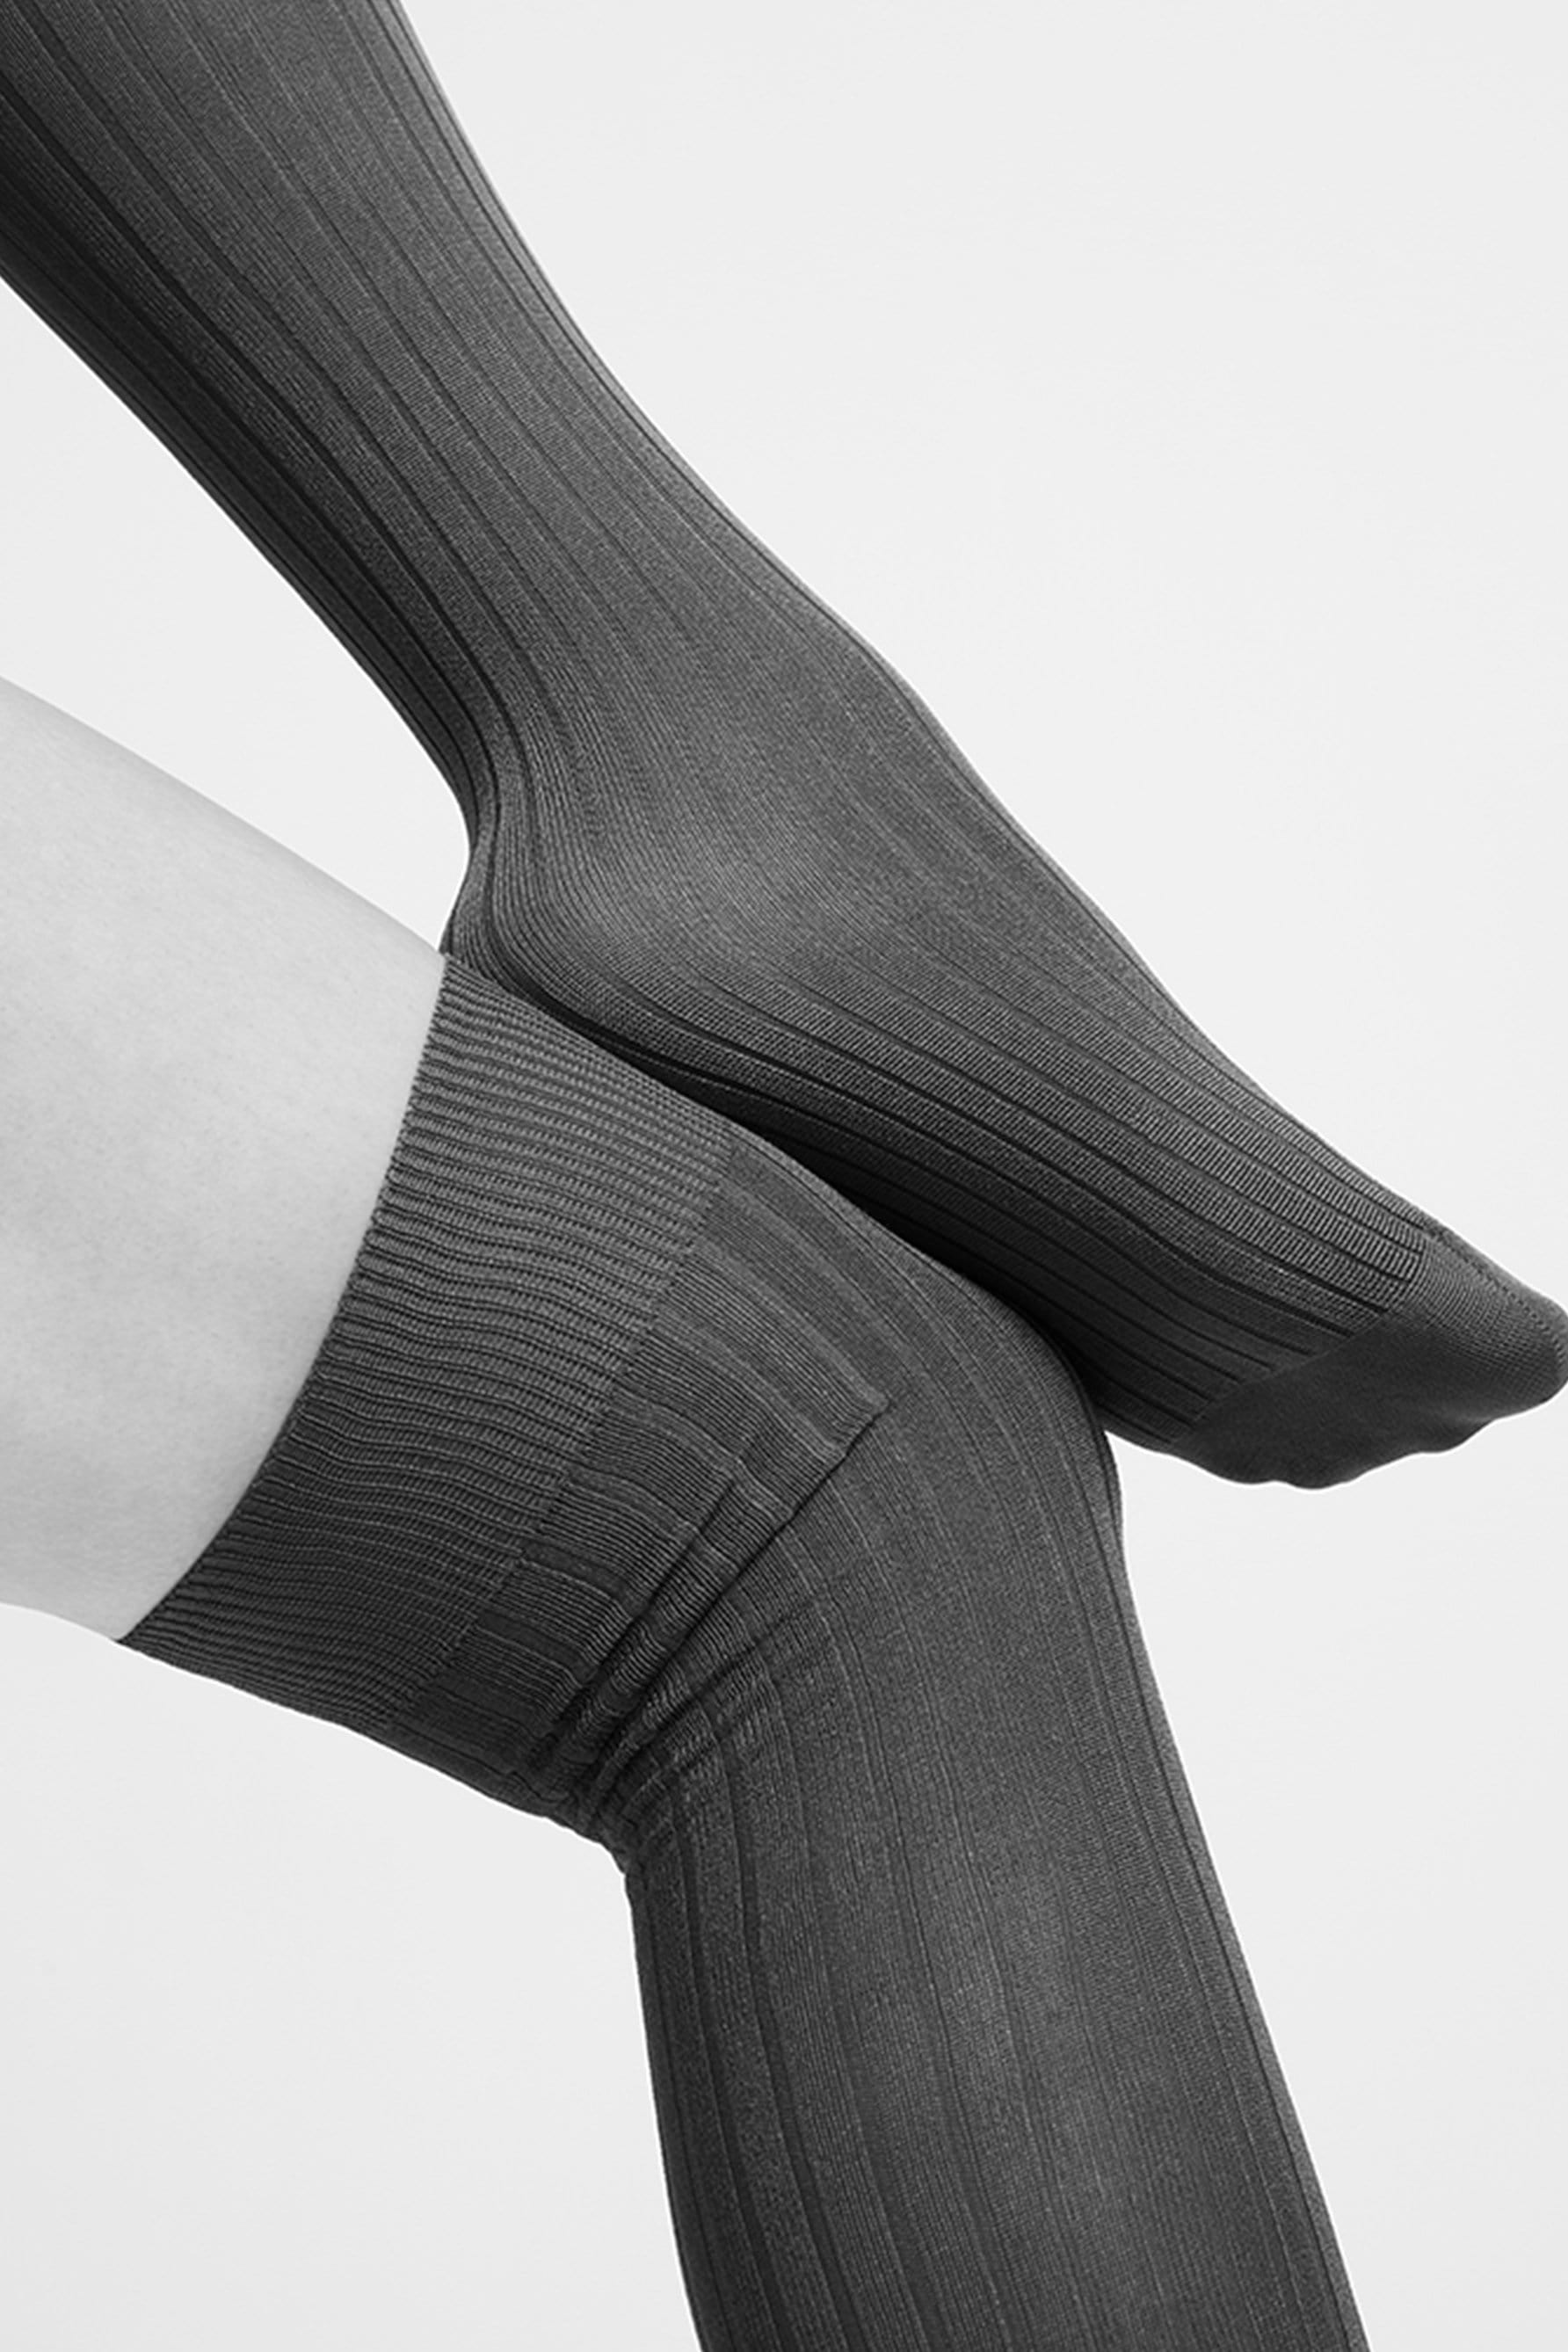 Swedish Stockings Ella over the knee ribbed socks in black, side view, shown on model, black and white photo